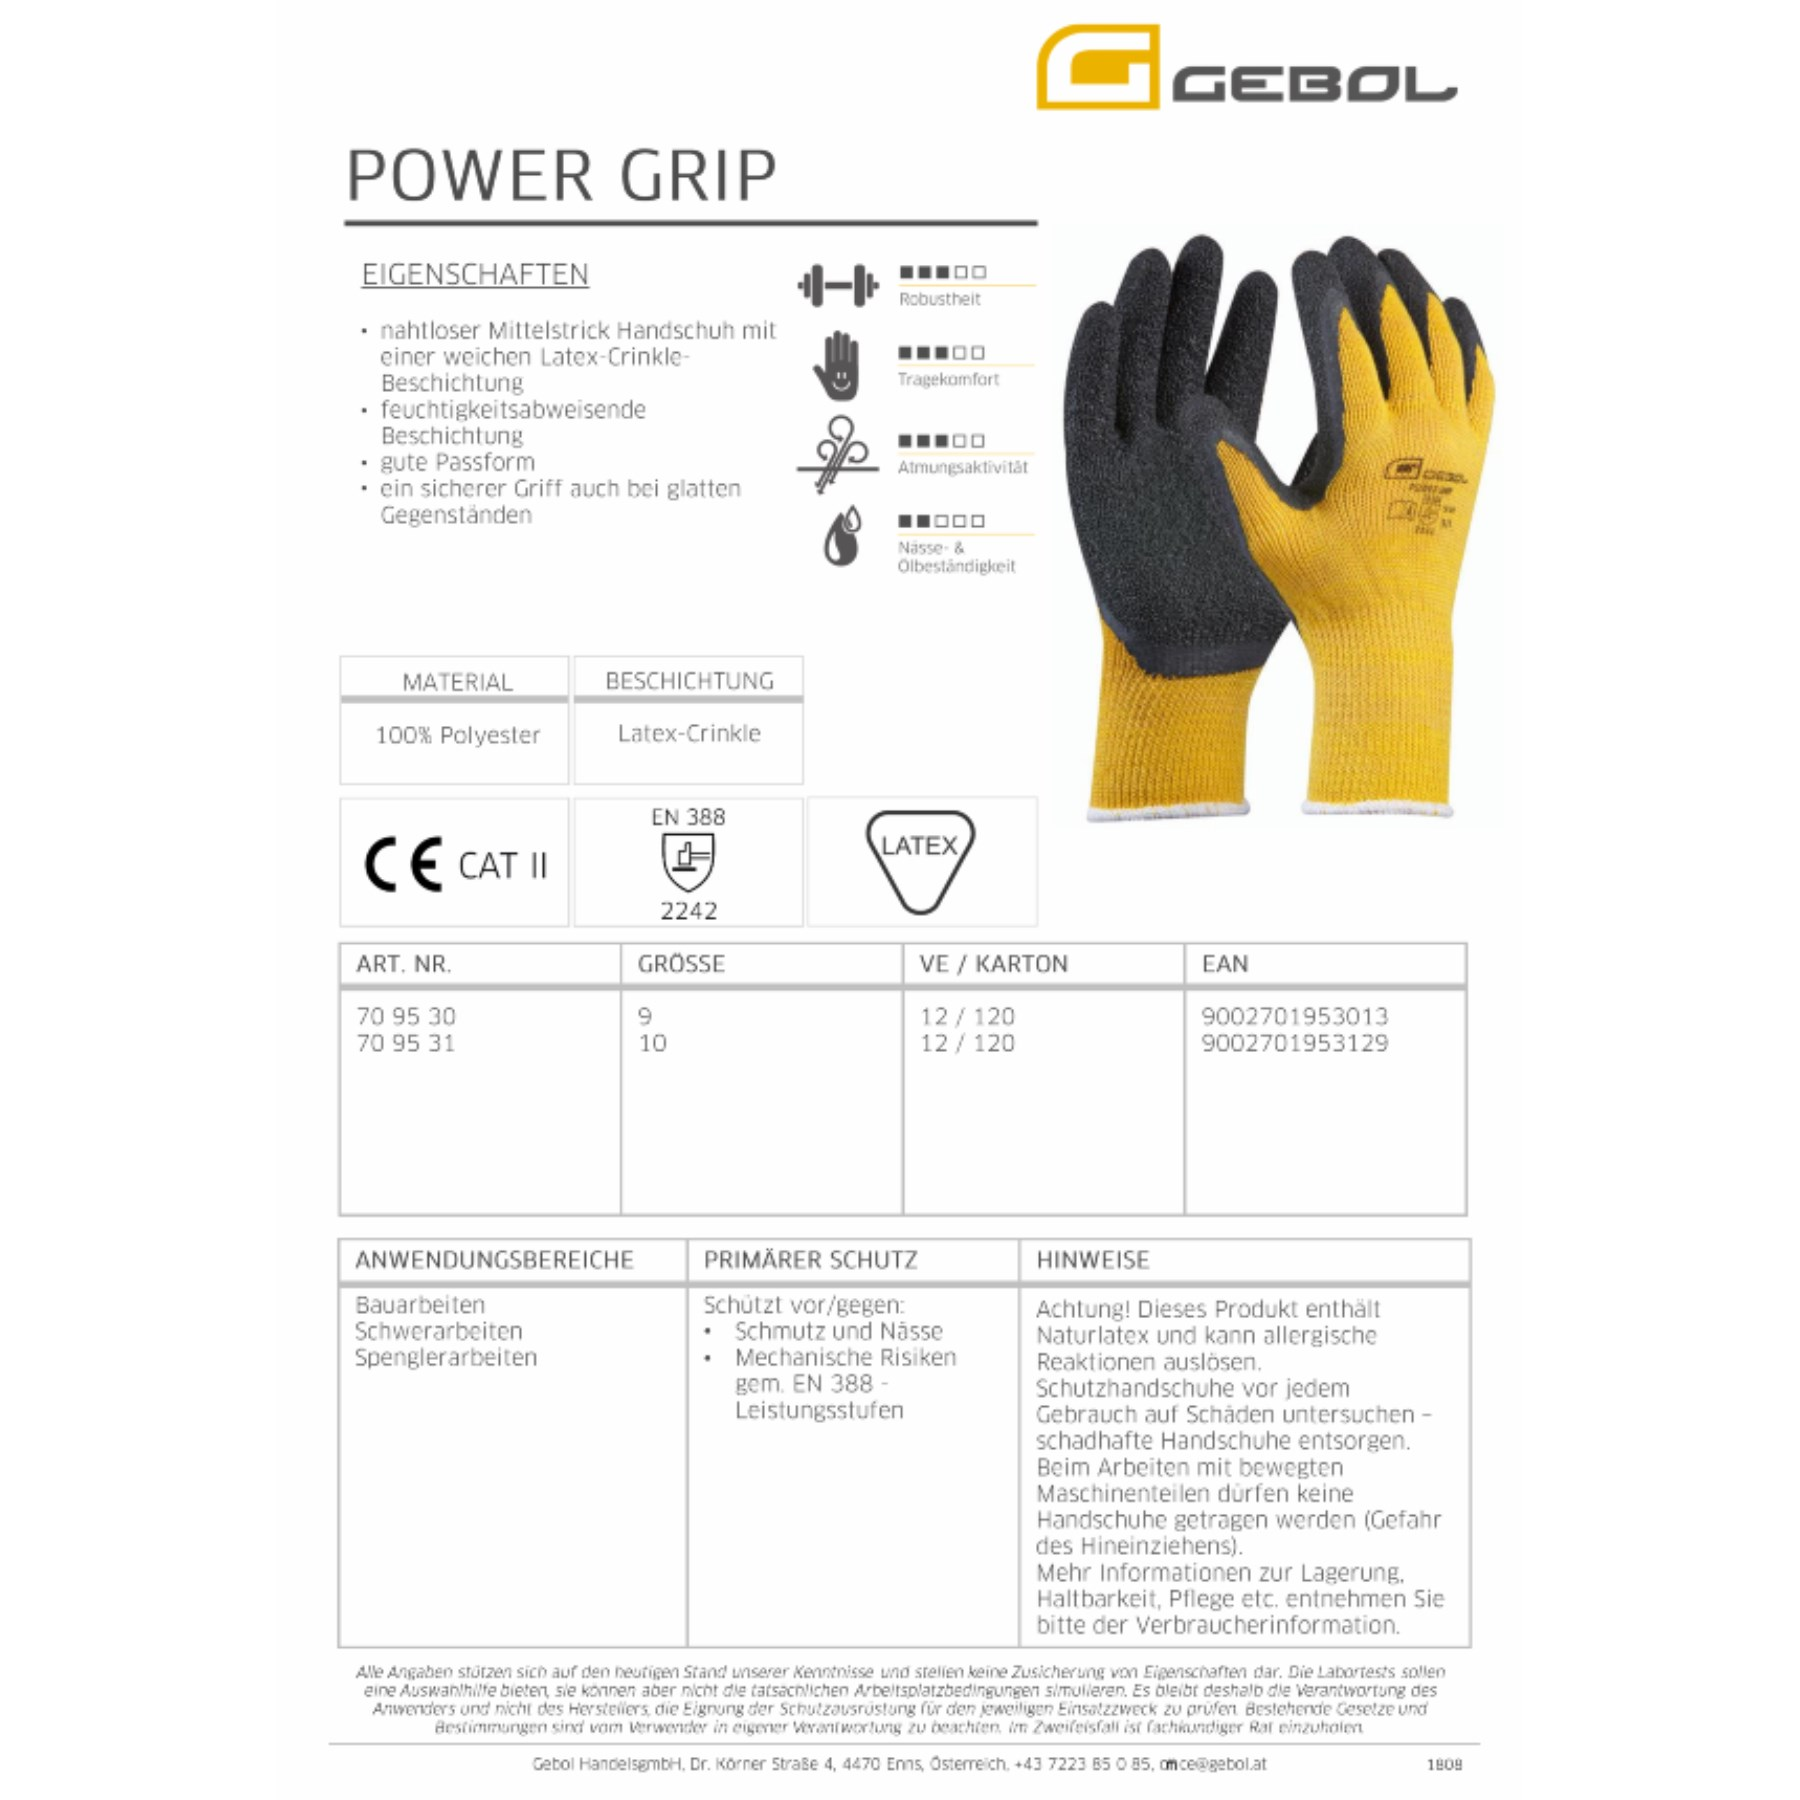 1236809 - Arbeitshandschuh Power Grip